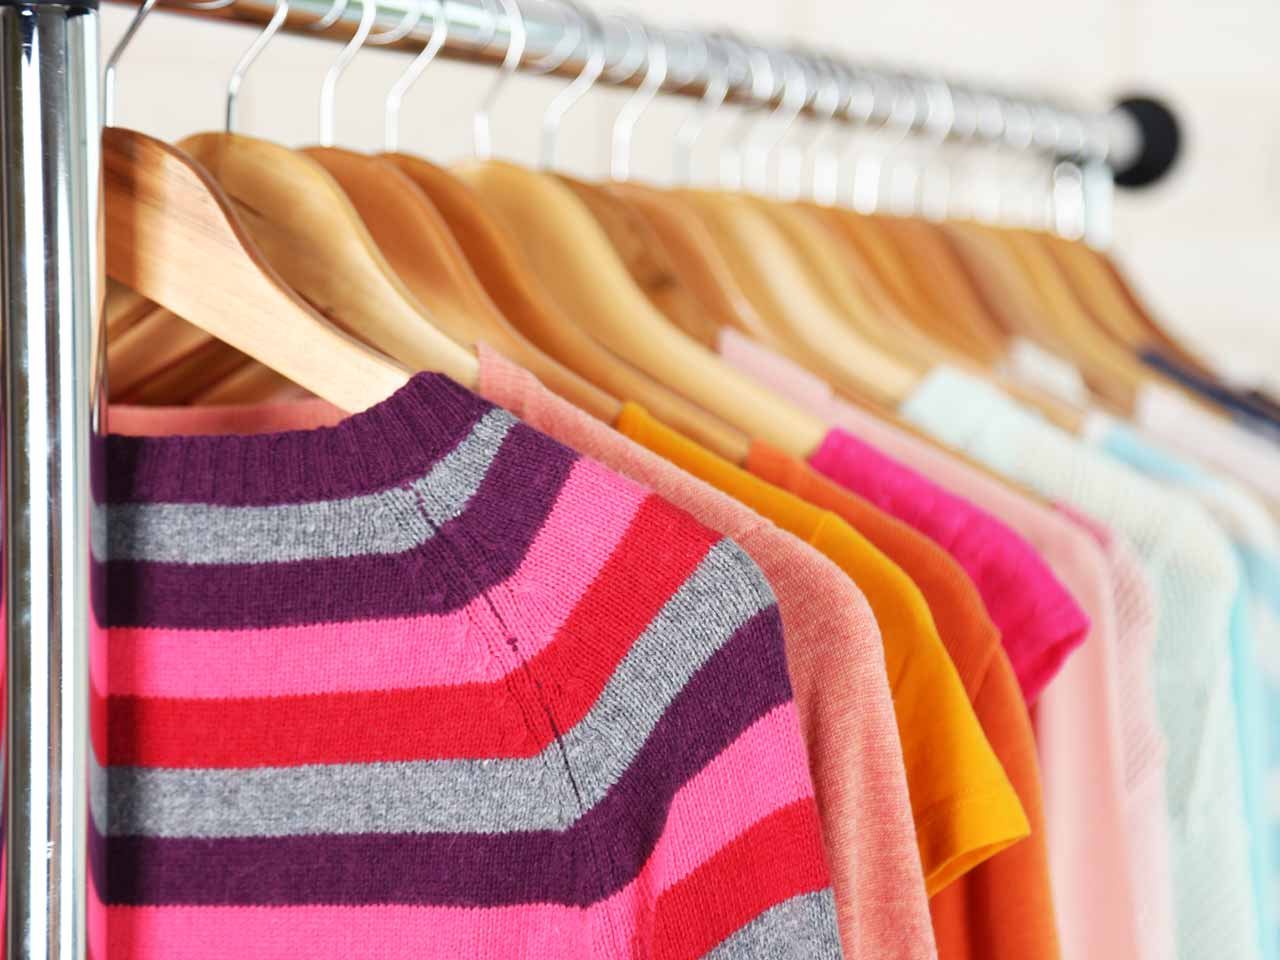 how-to-store-your-clothes-to-create-more-wardrobe-space-288673748-1280.jpg?width=700